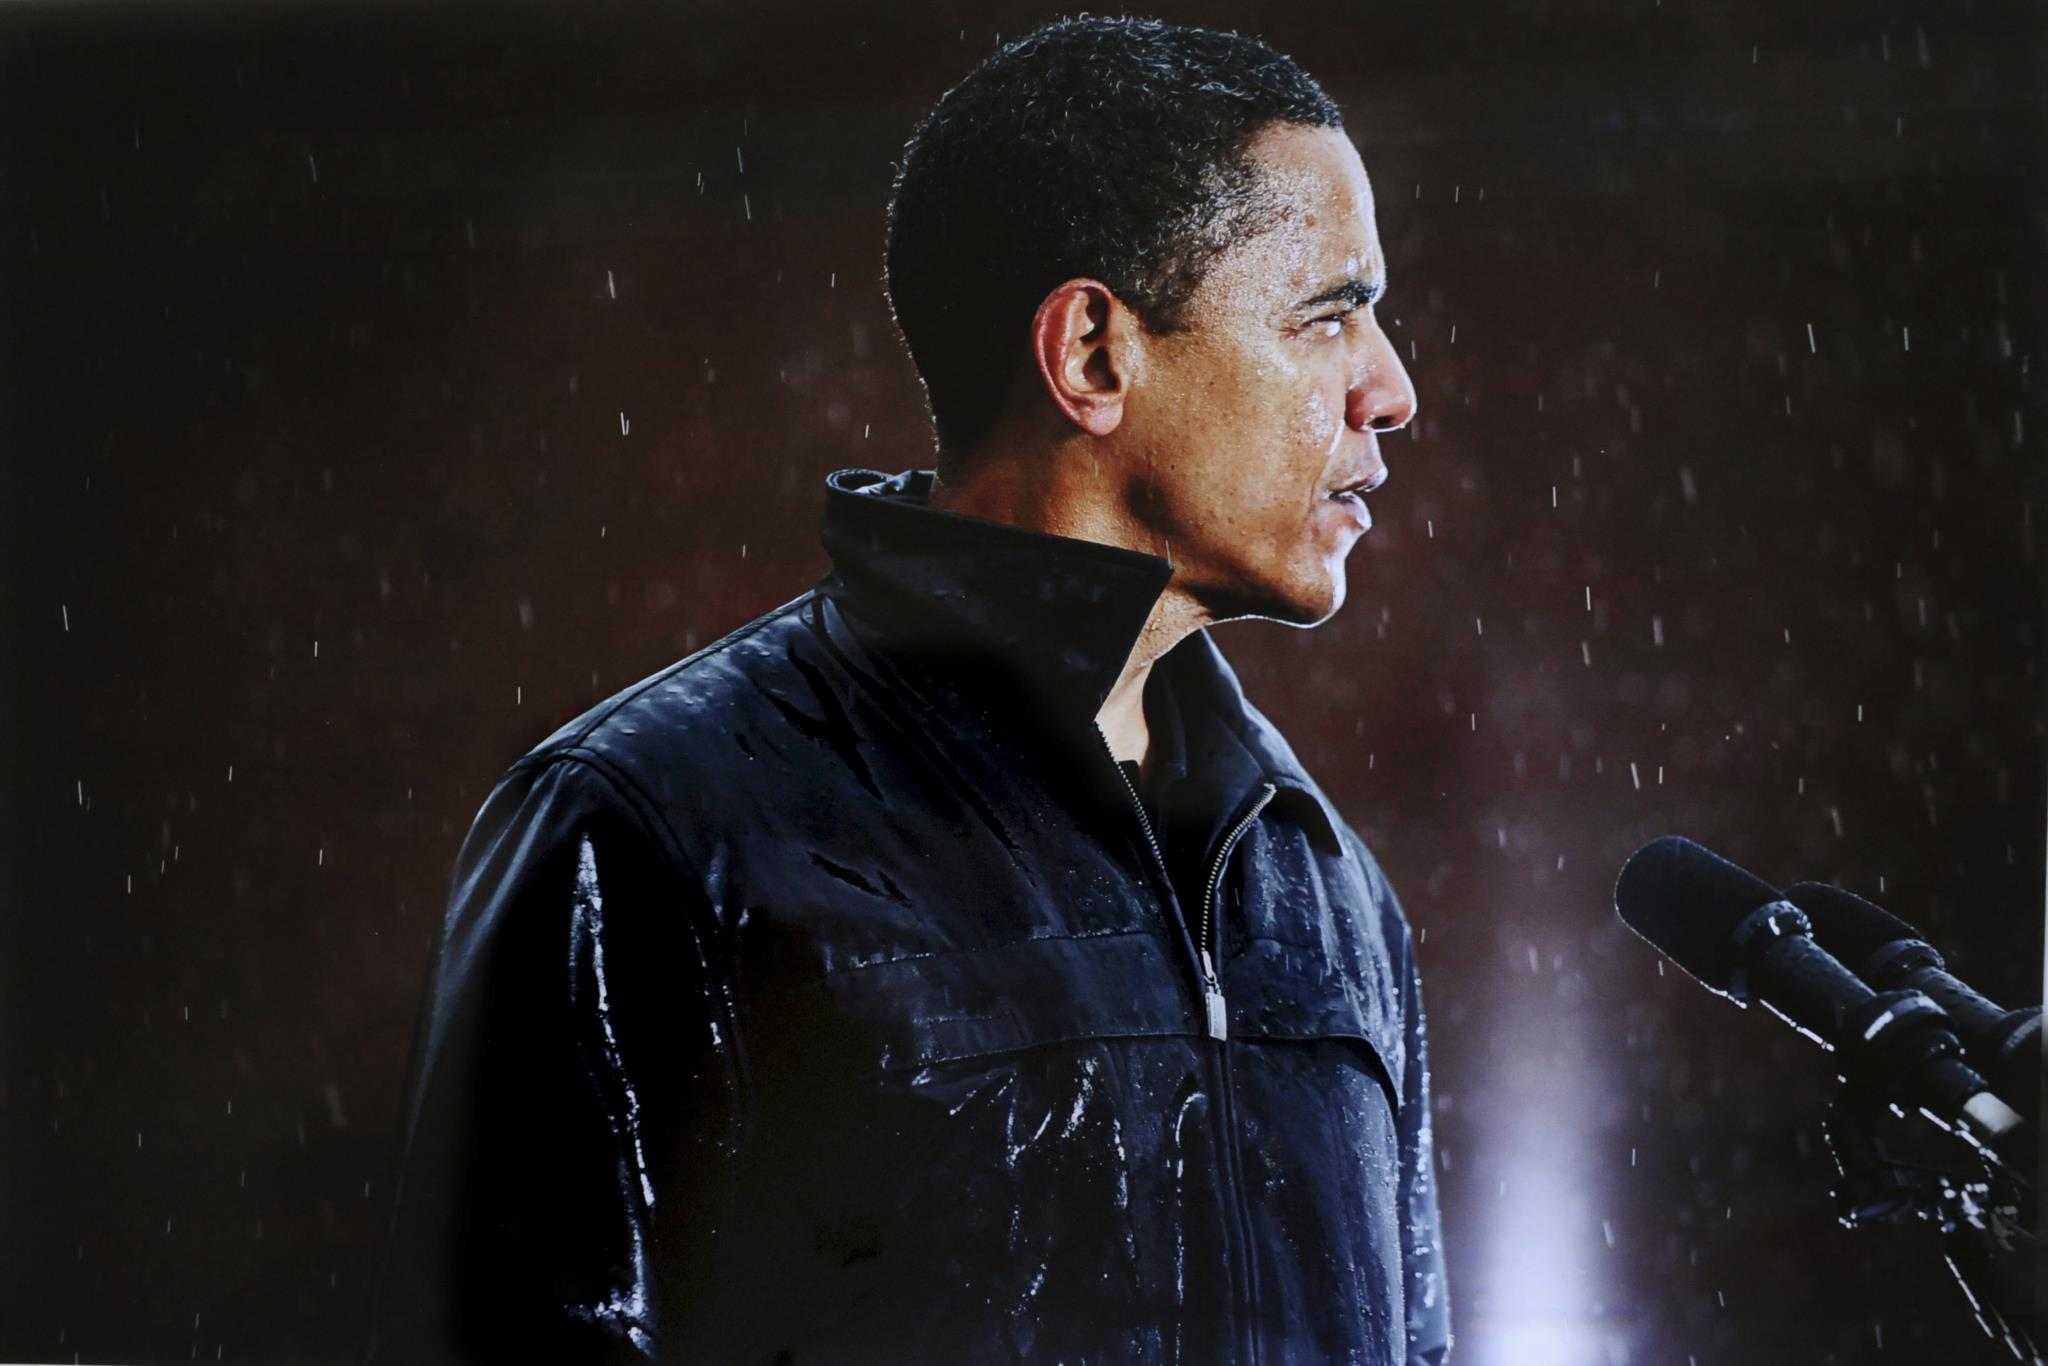 A fotografia de Barack Obama à chuva valeu a Damon Winter do New York Times o prémio Pulitzer em 2009